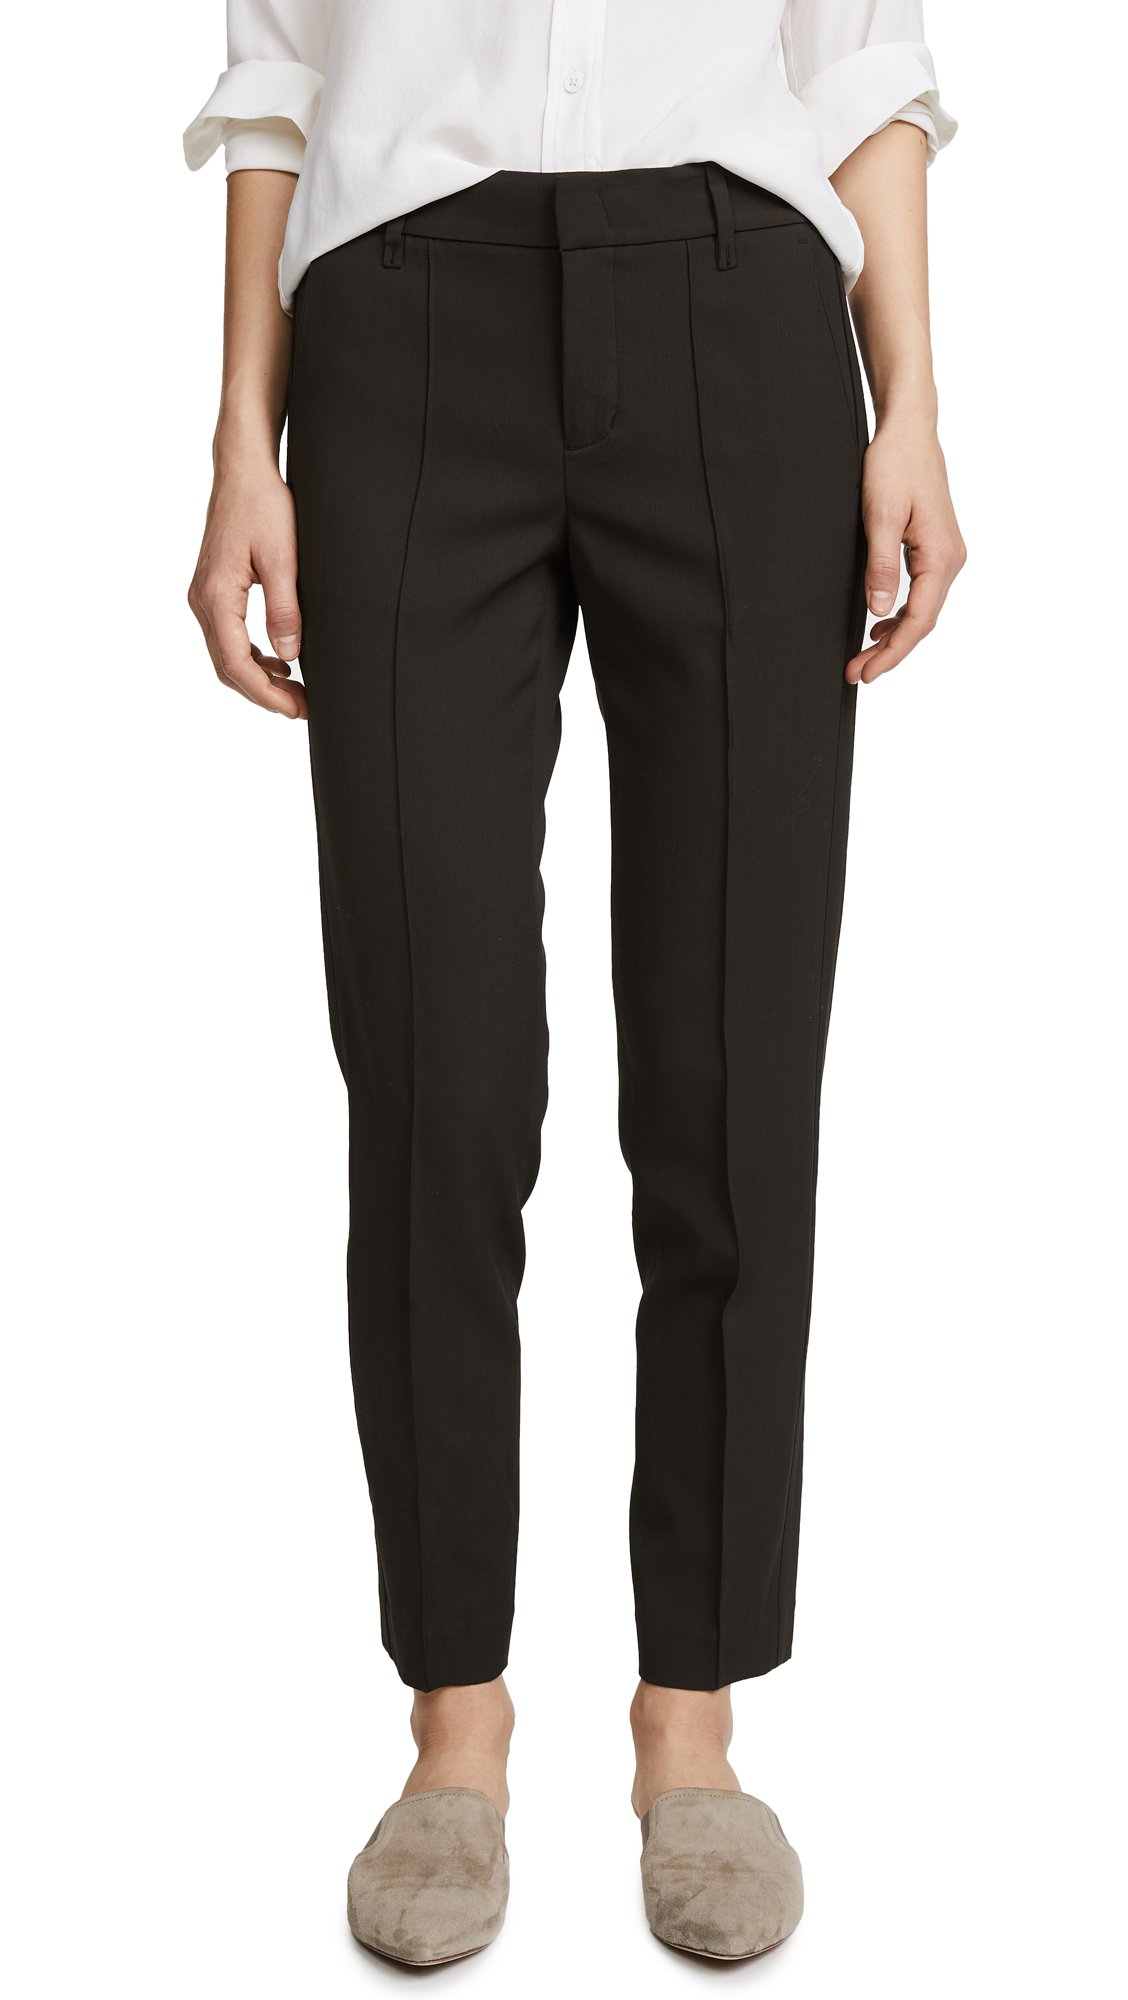 Vince Women's Stitch Front Strapping Pant, Olive, 12